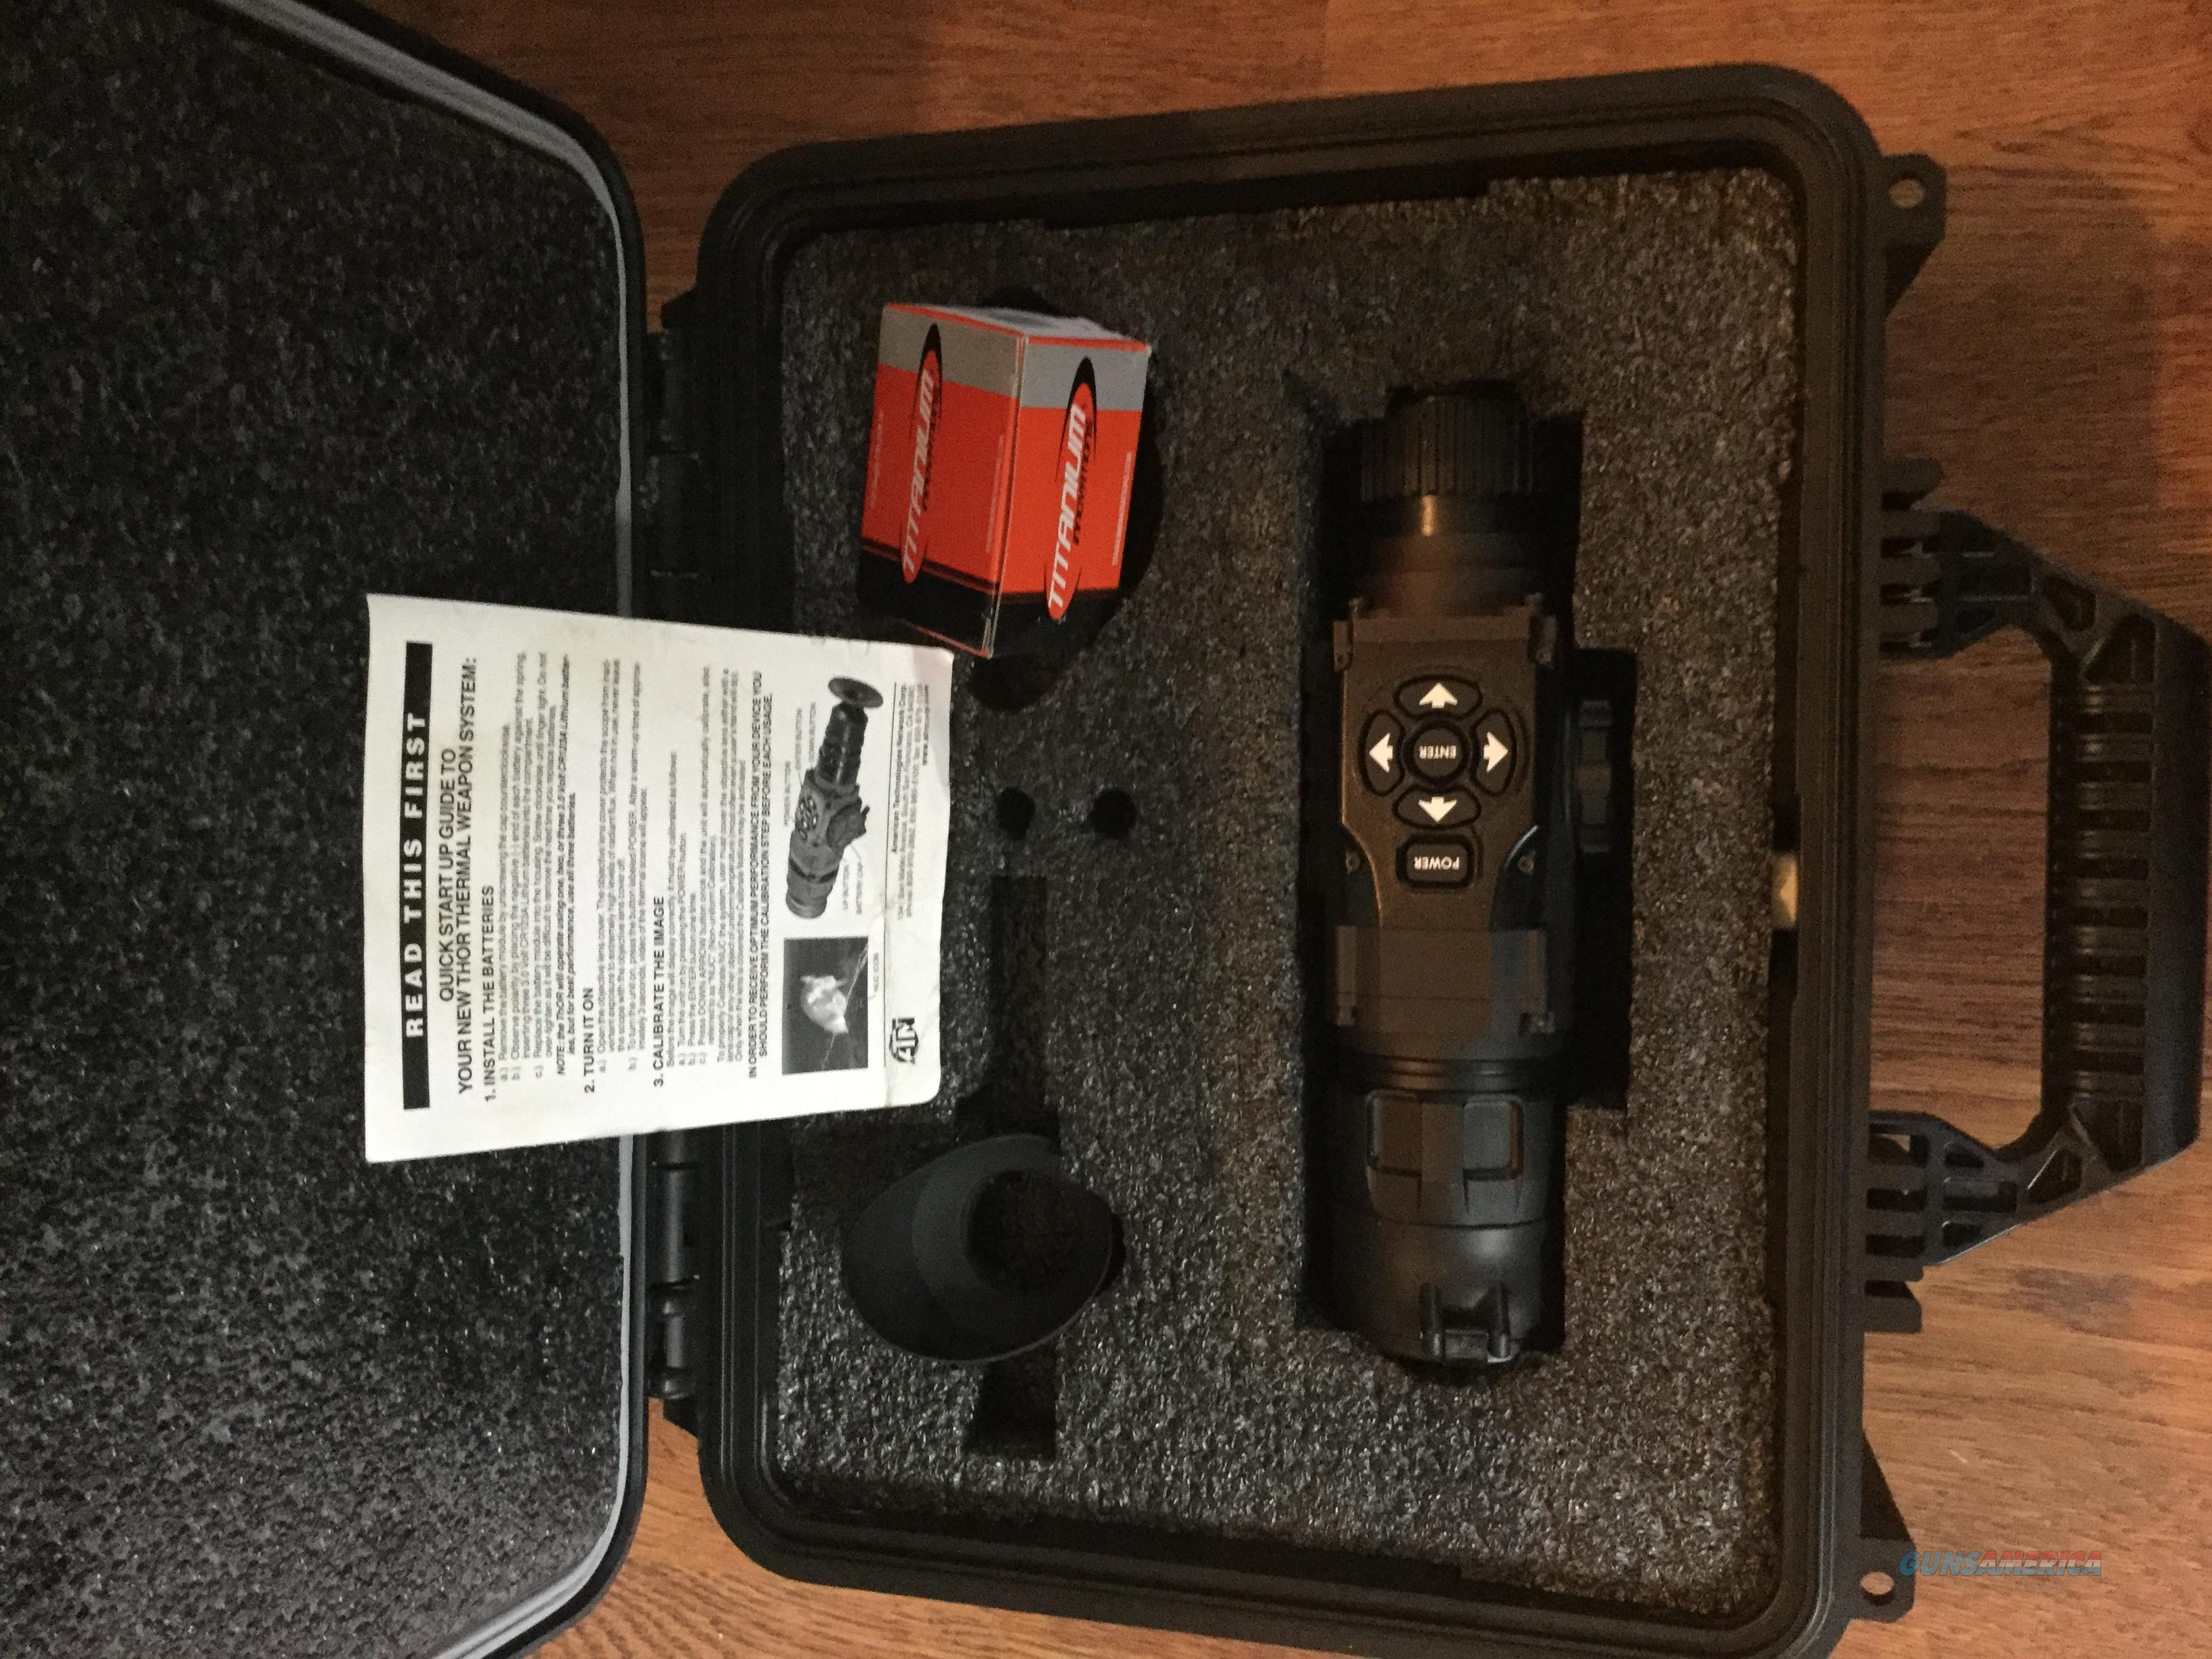 Thor-640 2.25x18 almost new in case  Non-Guns > Night Vision